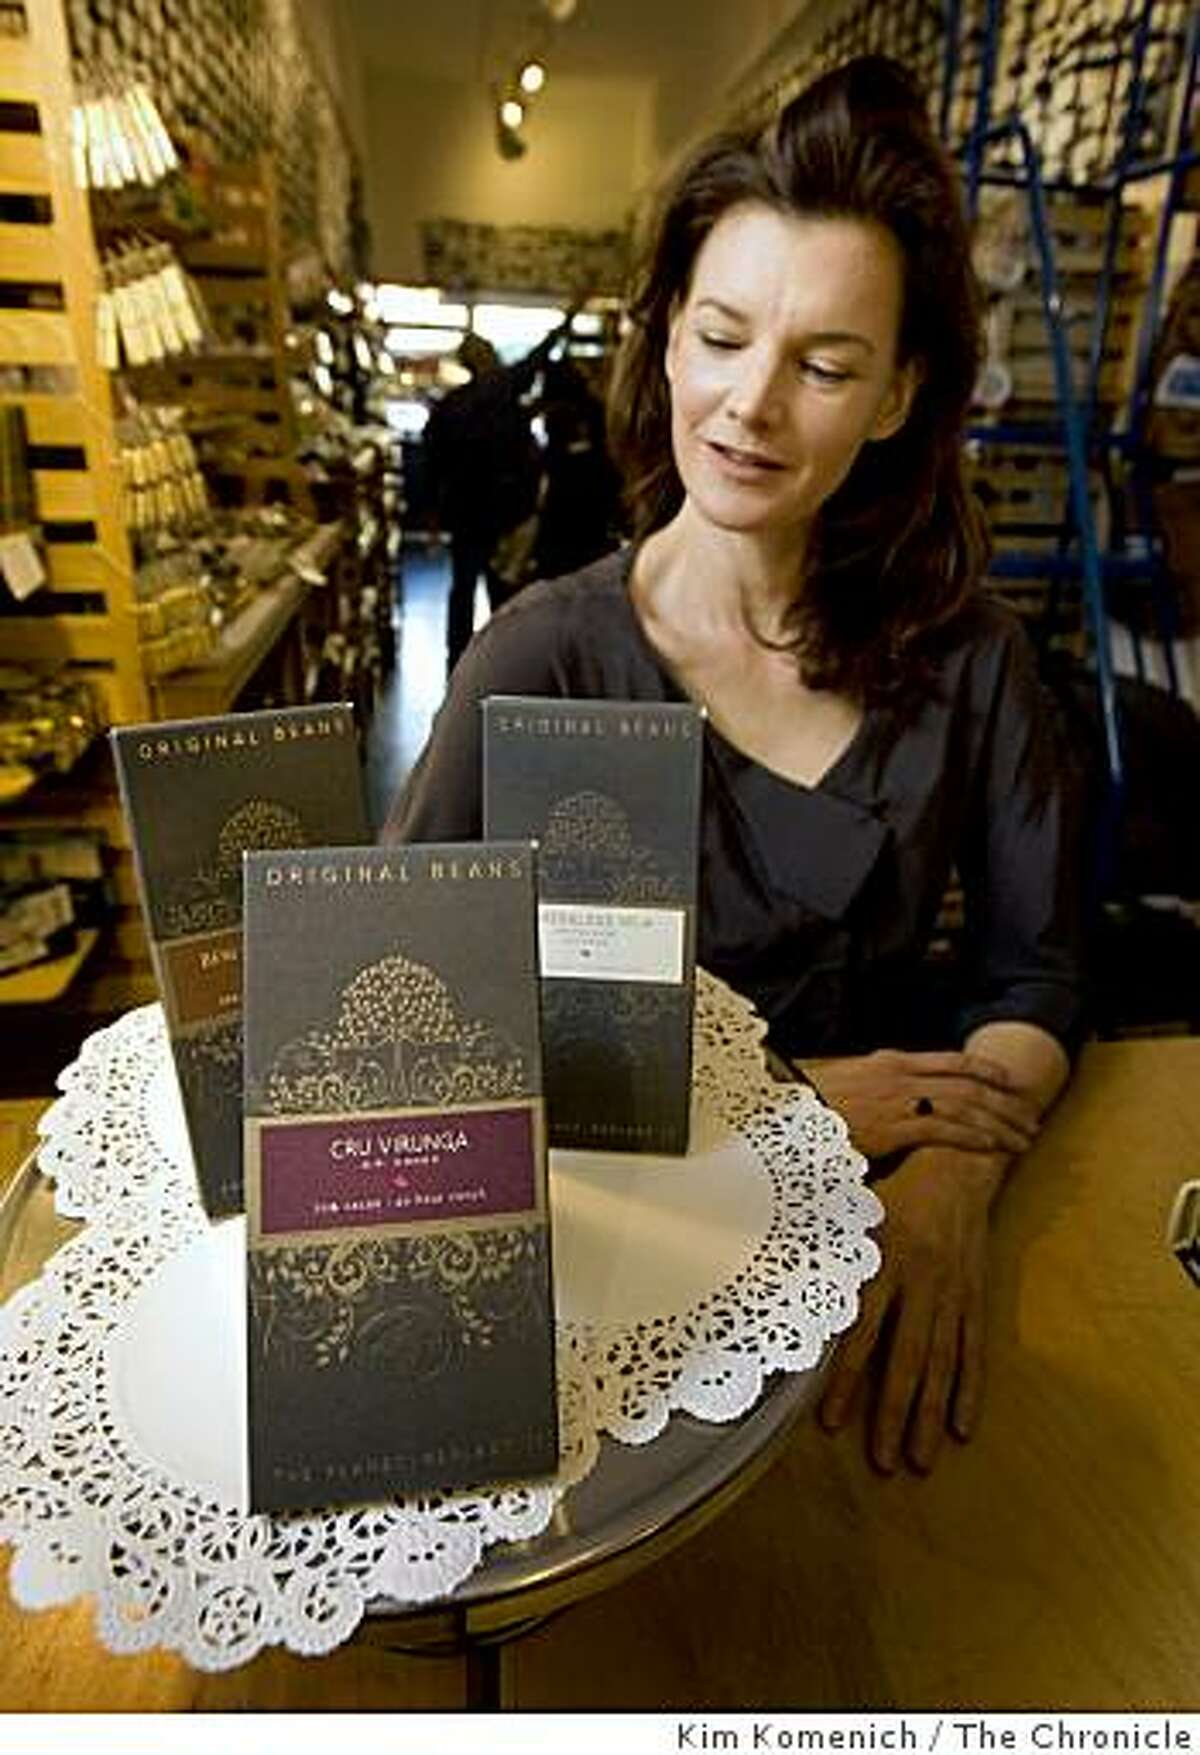 """Lesal Ruskey, co-founder of Original Beans, stands next to a display of her company's product at the """"Chocolate Covered"""" store at 4069 24th St. in San Francisco, Calif., on Thursday, Jan. 29, 2009. Original Beans produces chocolate from known fair trade sources."""